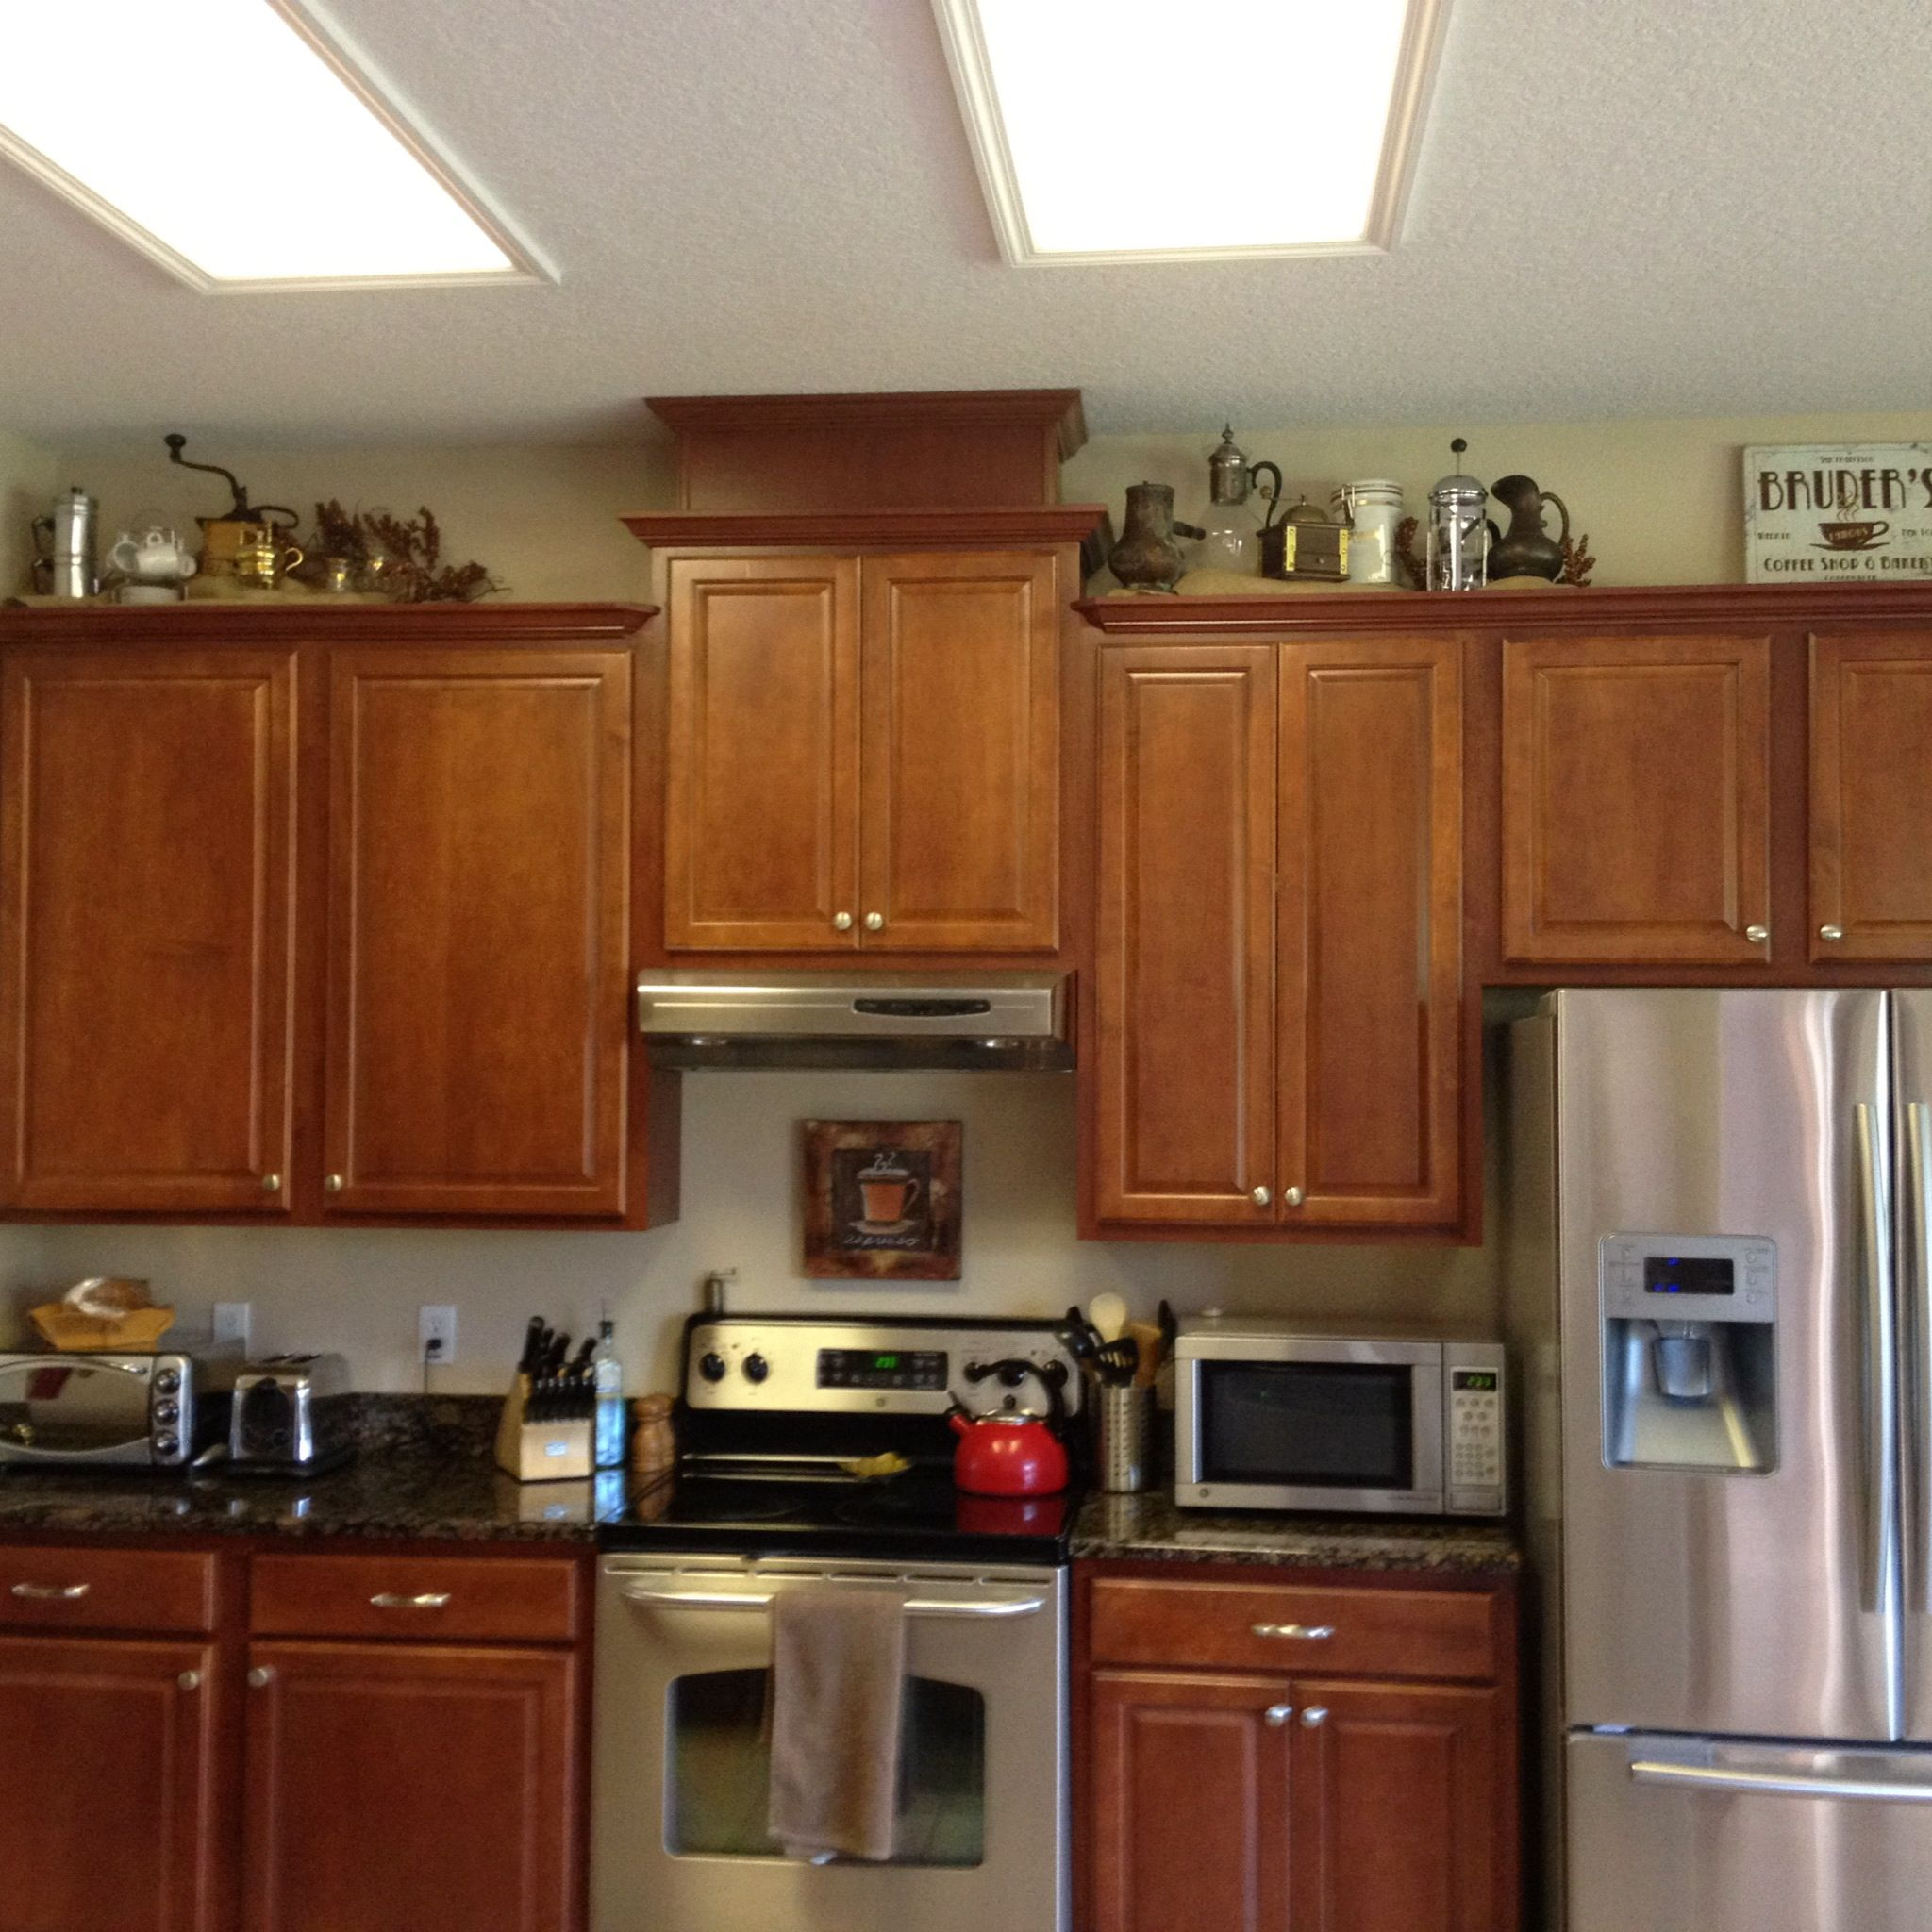 Coffee Themed Decor Above Cabinets Kitchen Decor Themes Coffee Cafe Kitchen Decor Kitchen Decor Themes